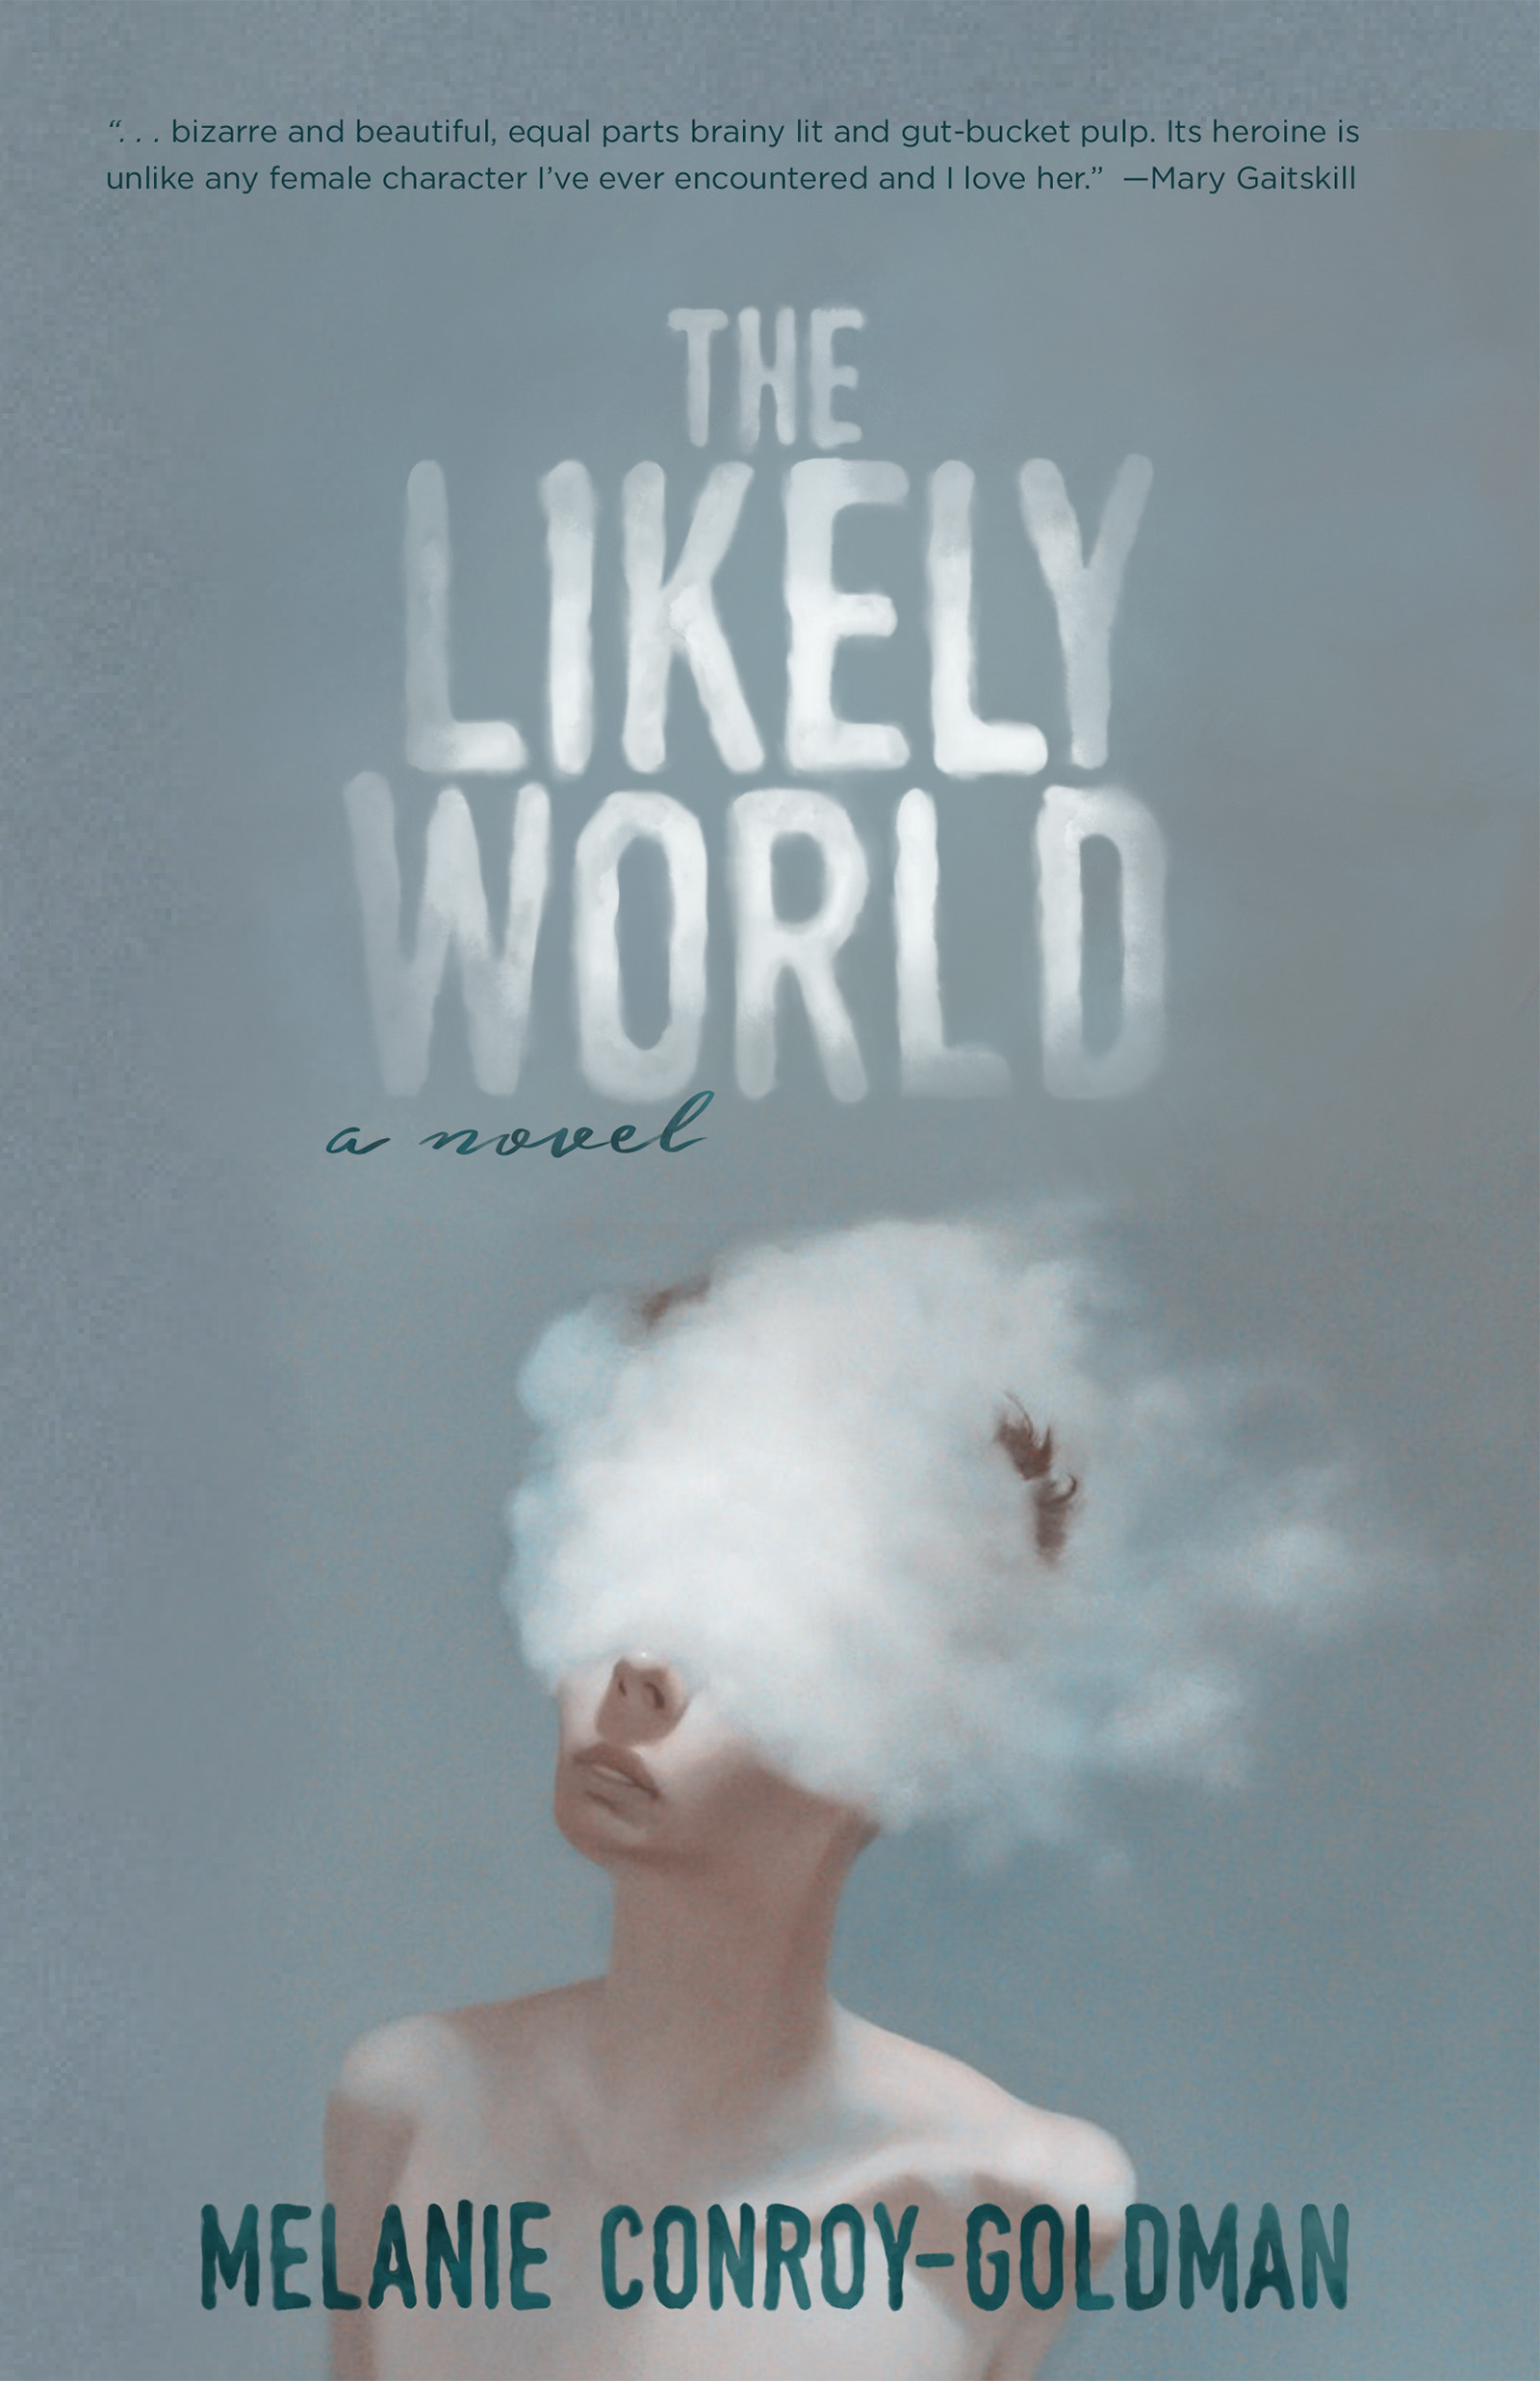 A grey background with a painting of a person who's head is submerged inside a cloud, with white typography made to look like clouds spelling out The Likely World a novel by Melanie Conroy Goldman.